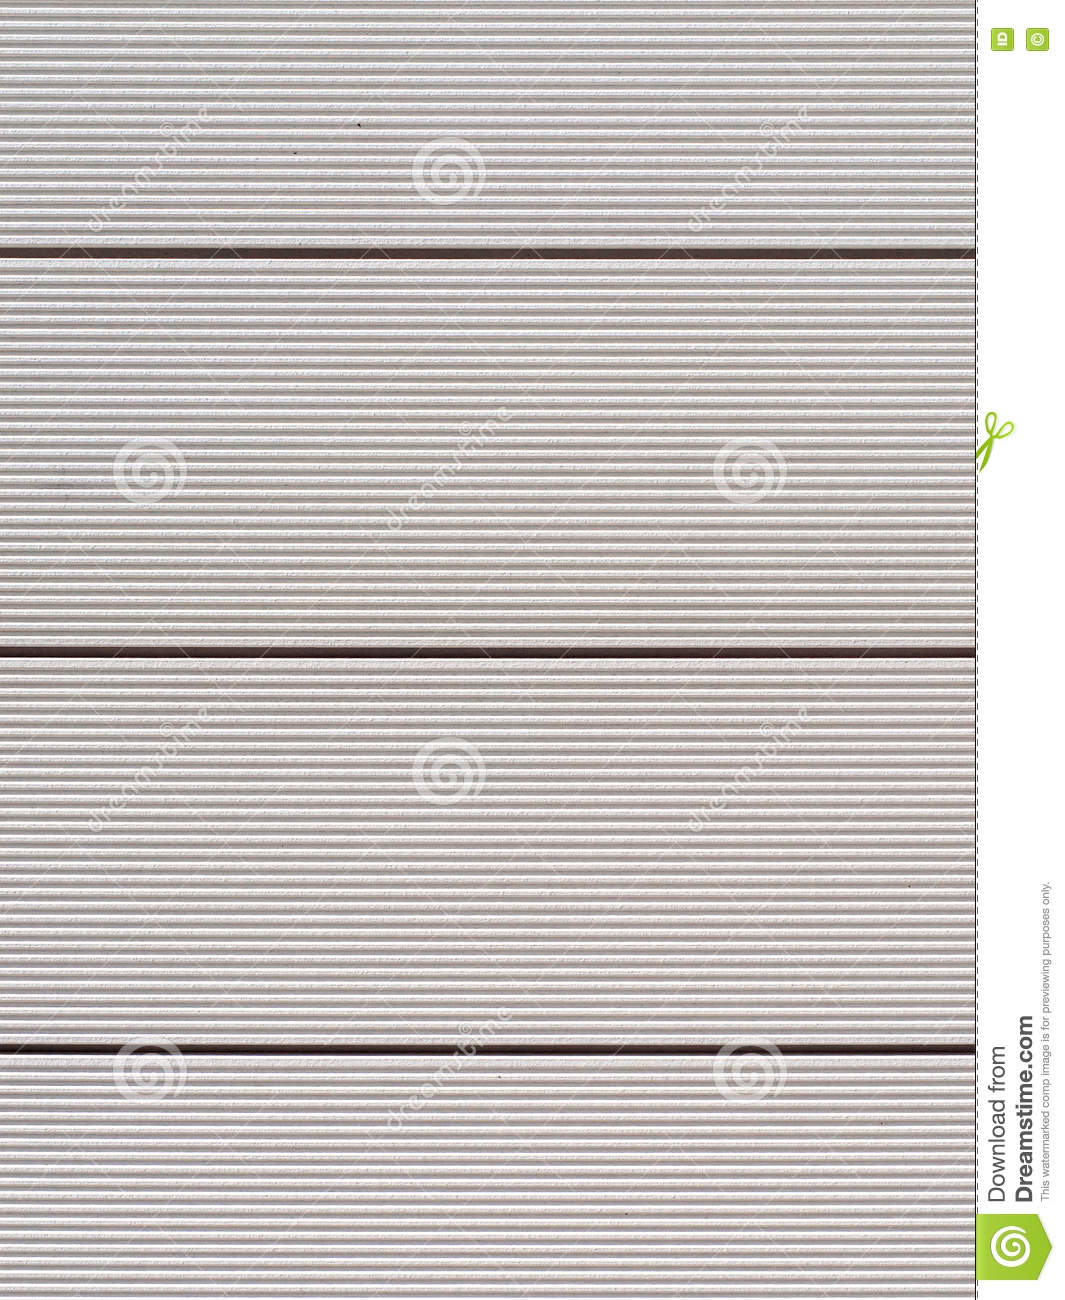 Off white diagonal striped plastic texture picture free photograph - Royalty Free Stock Photo Texture Wall White